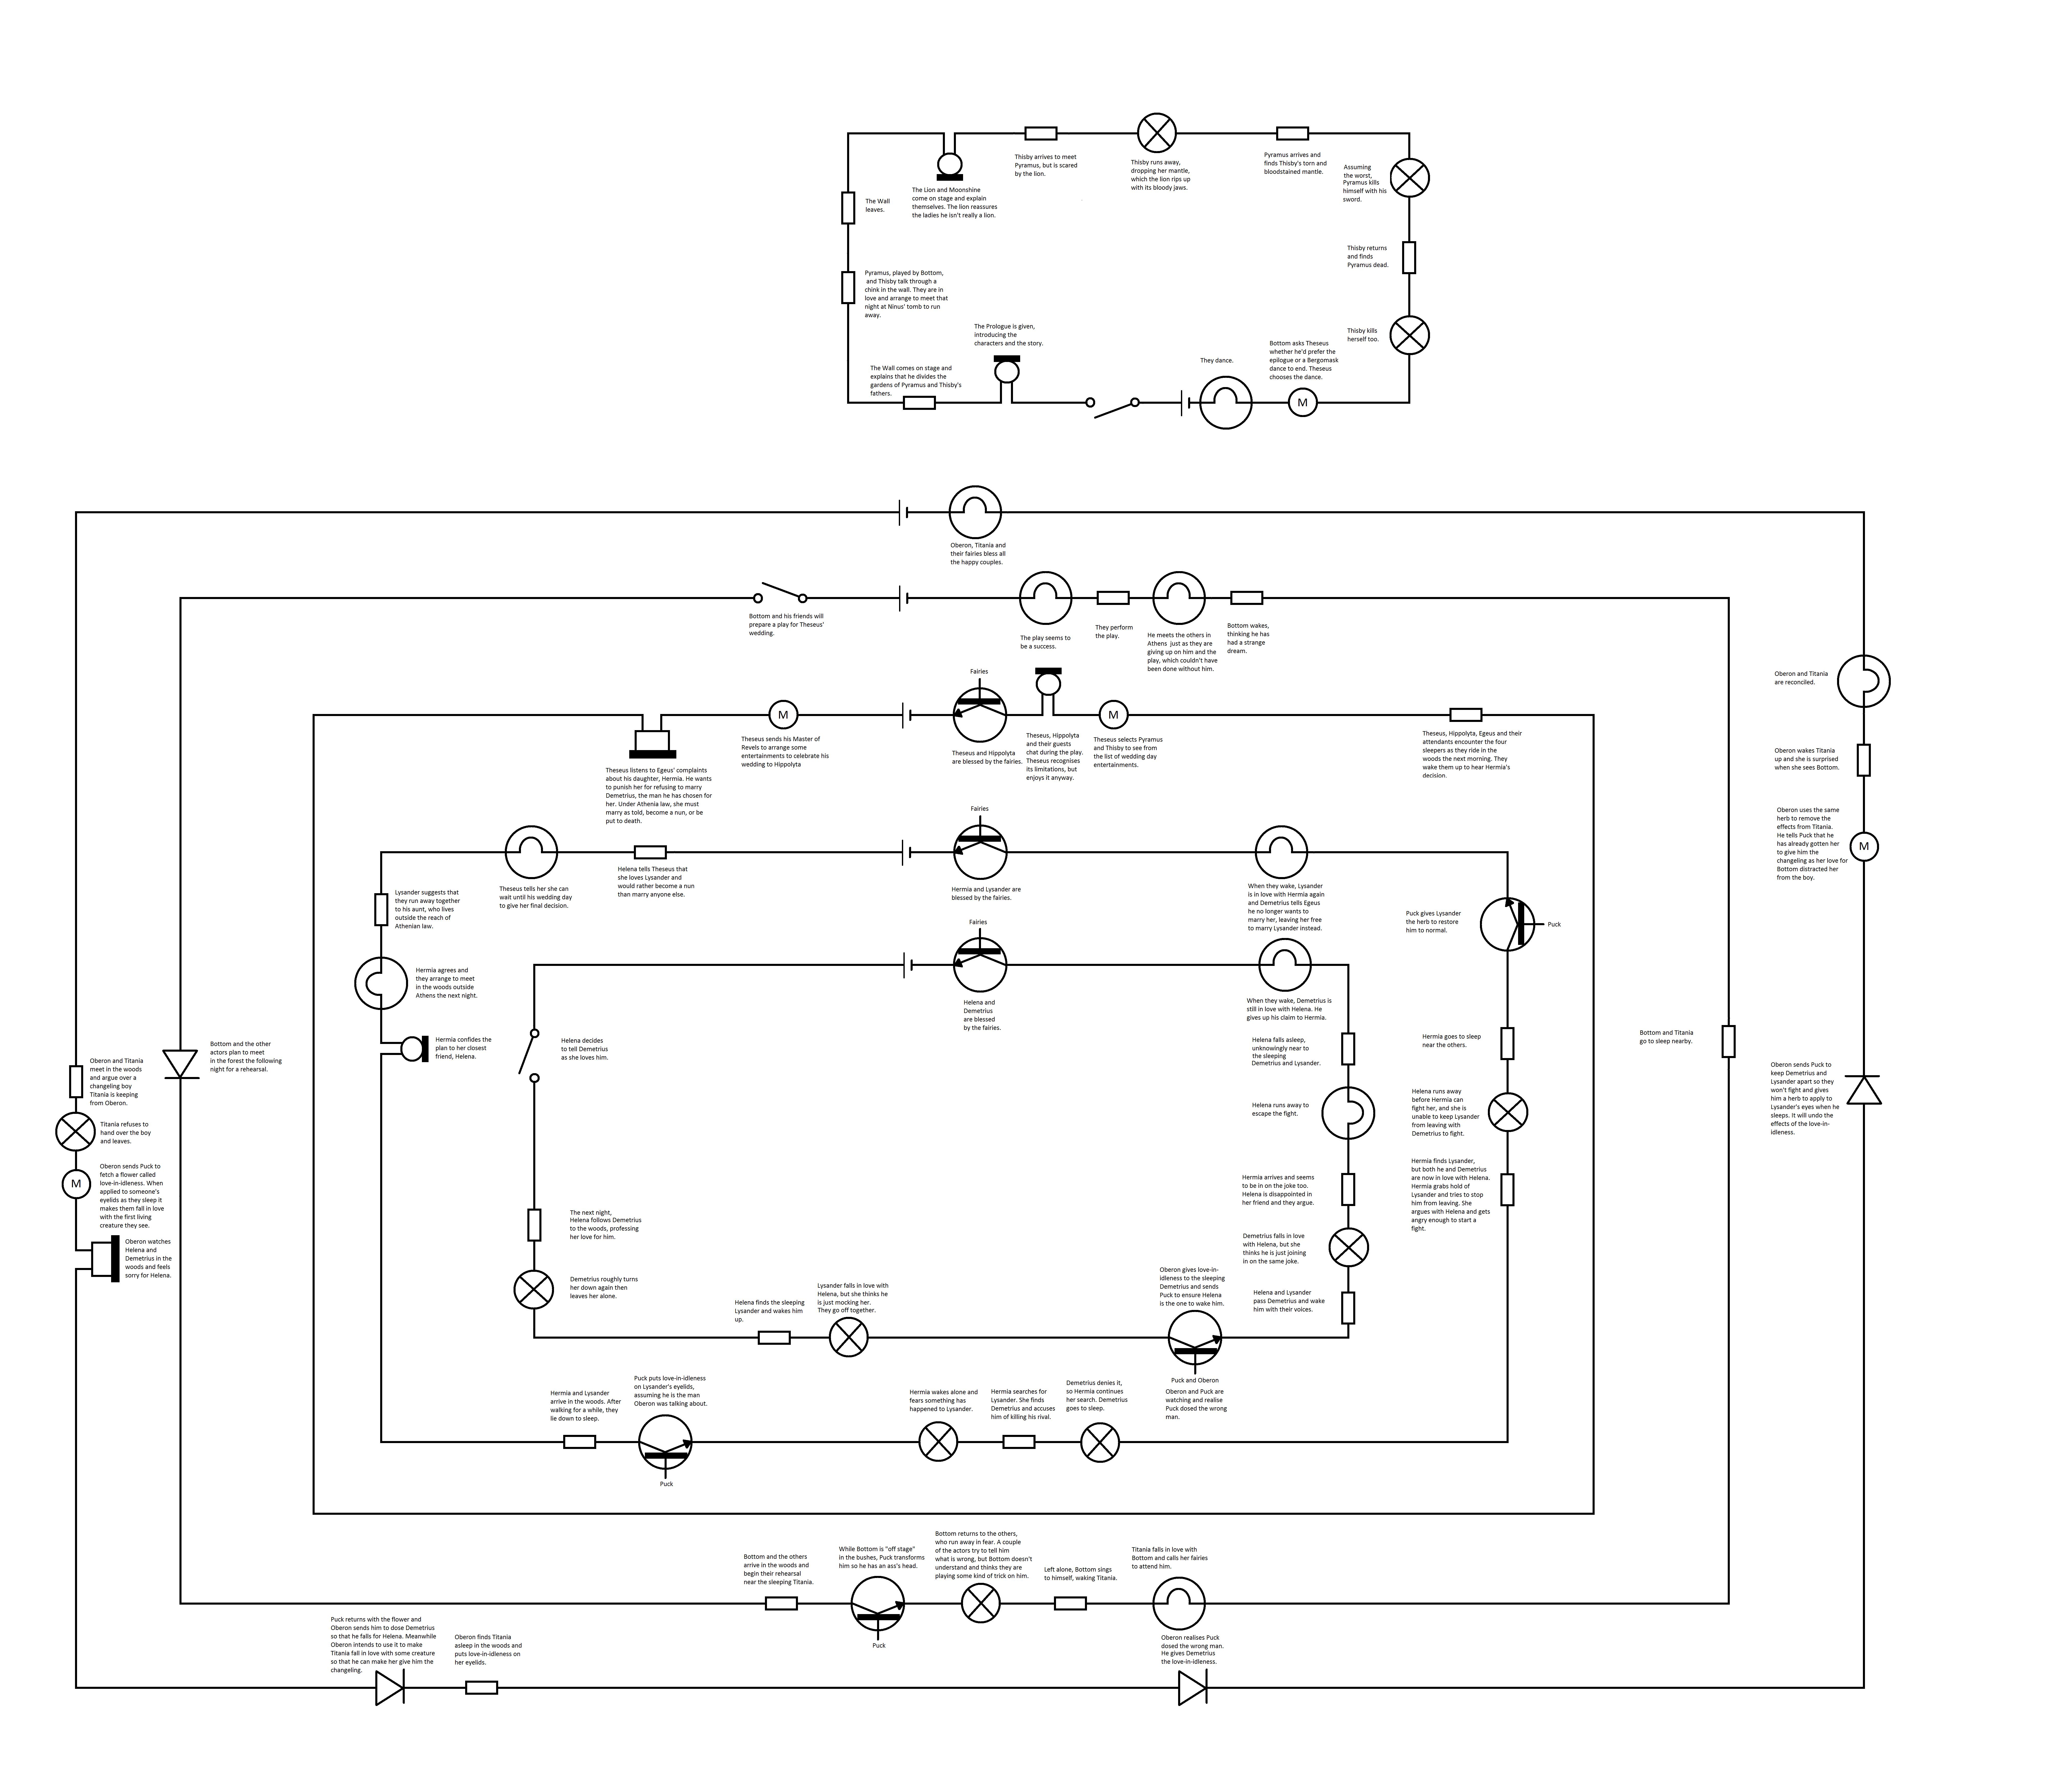 night plot diagram wiring for cat5 cable electronarrative